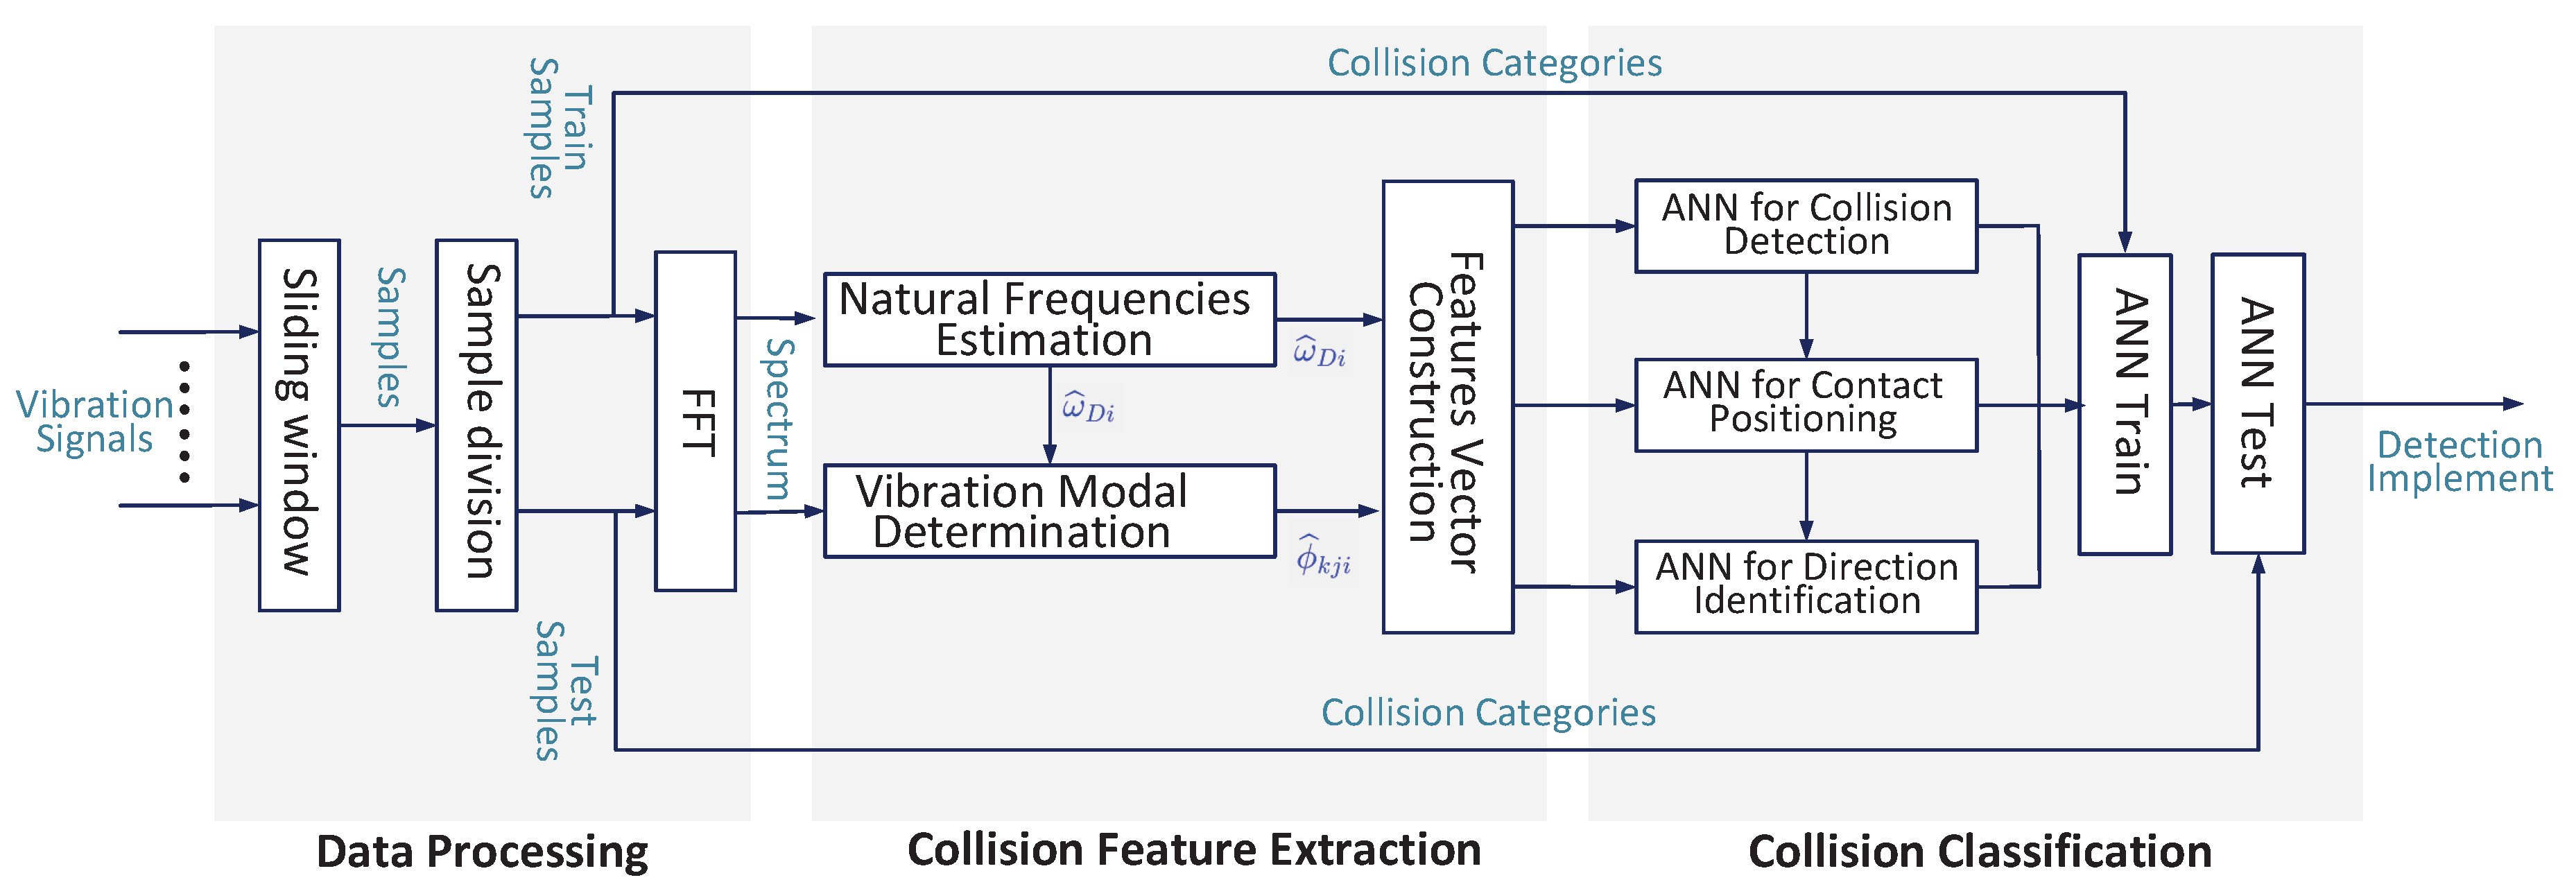 Sensors | Free Full-Text | Collision Detection and